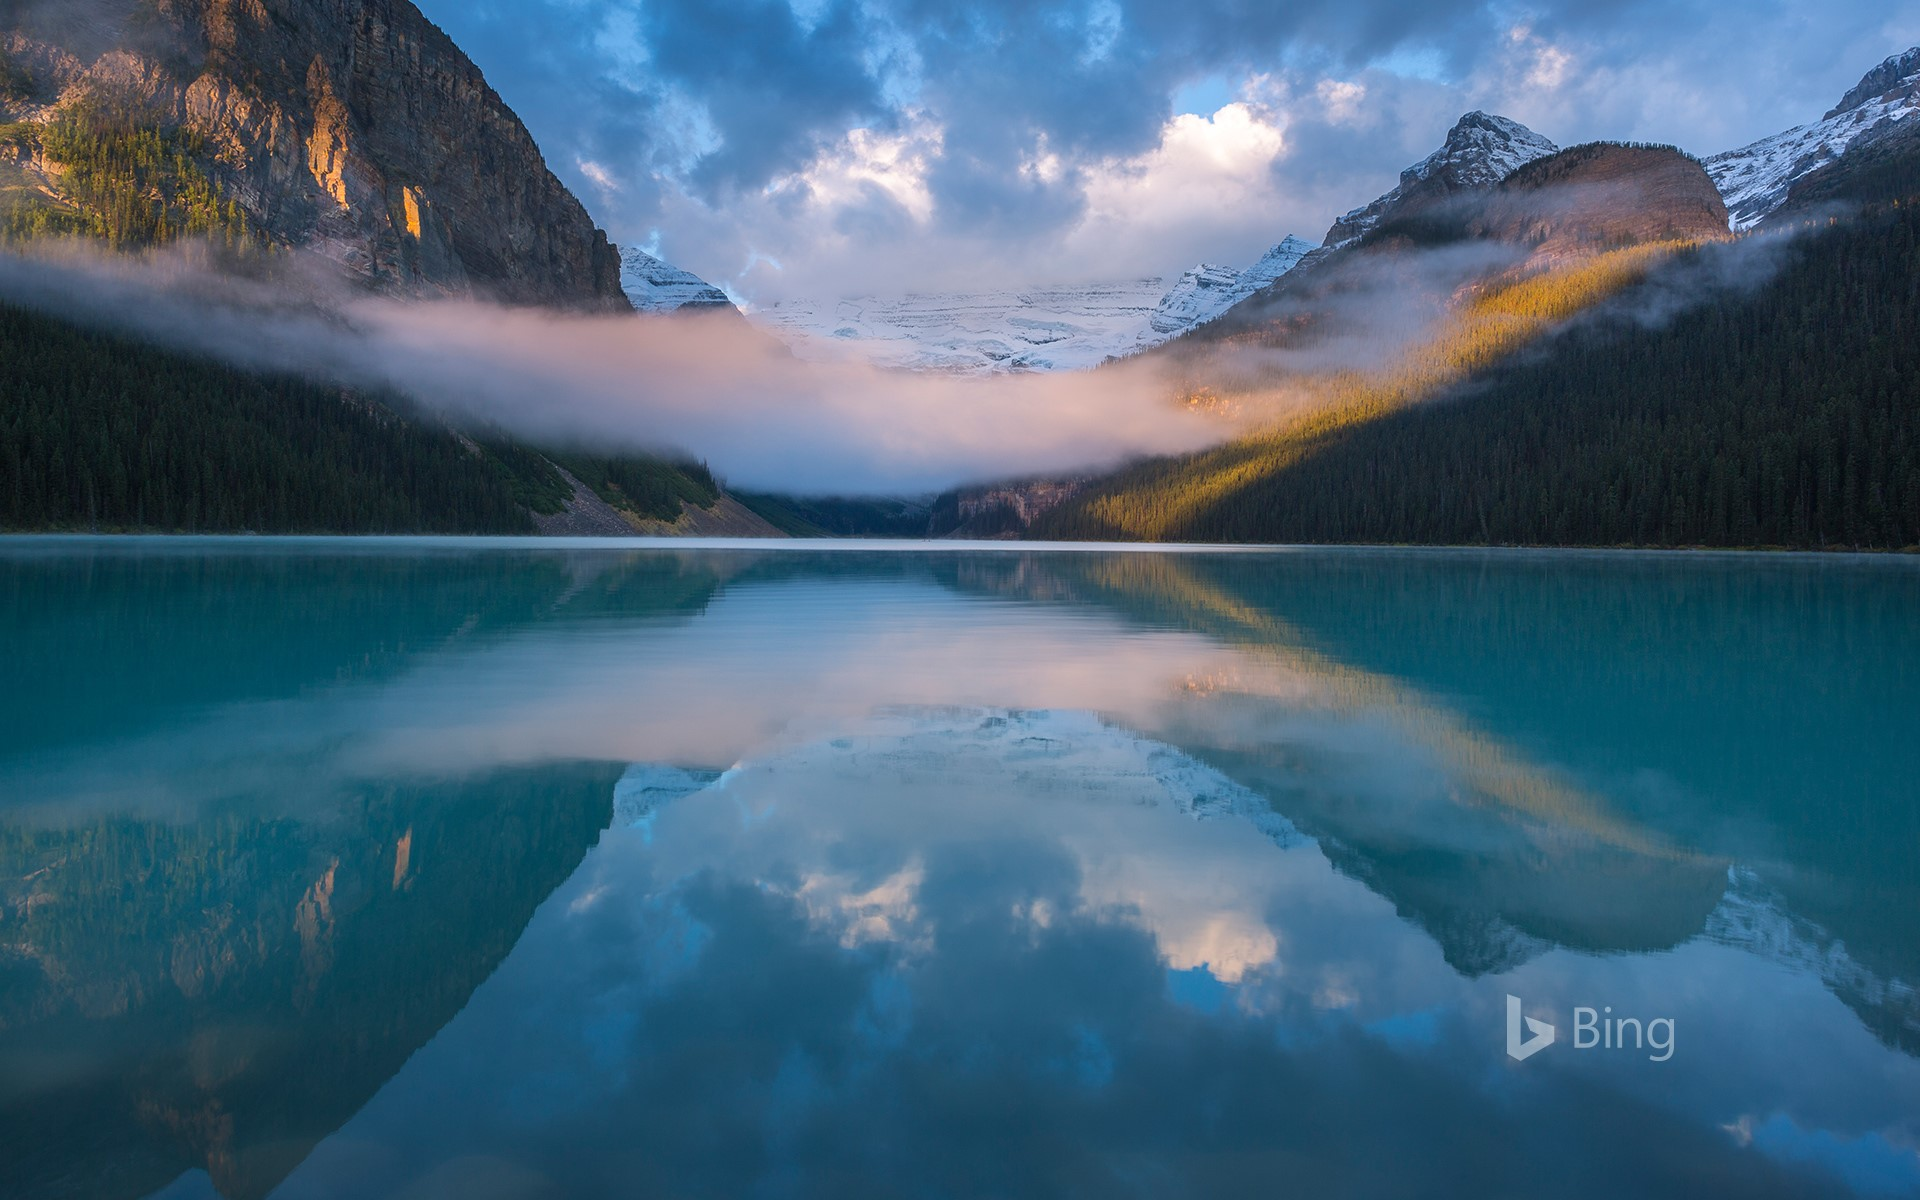 A foggy morning at Lake Louise, Alberta, Canada